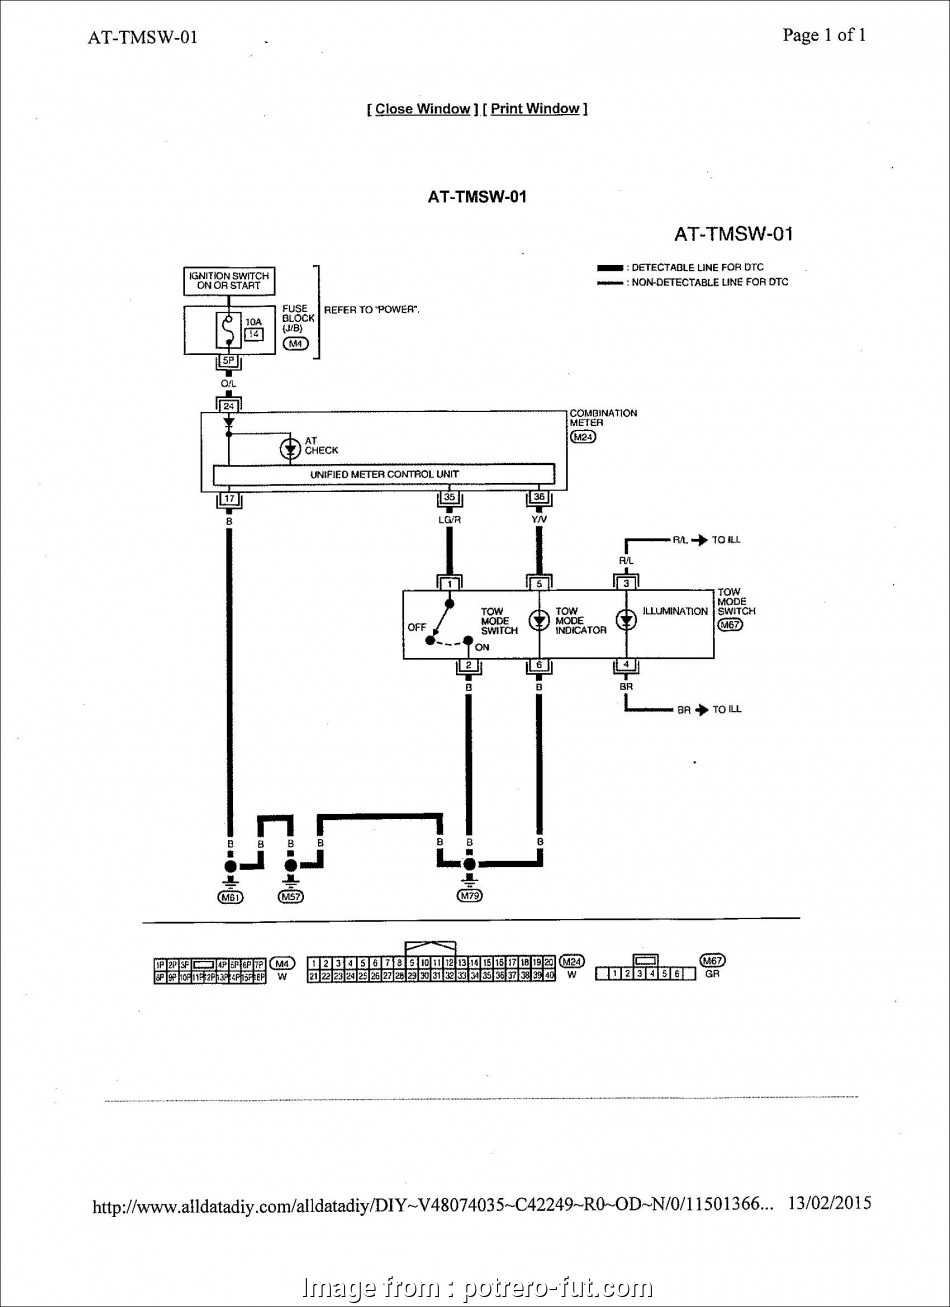 12v Spst Relay Wiring Diagram FULL HD Version Wiring Diagram - MARZ-DIAGRAM .ARROCCOTURICCHI.ITDiagram Database And Images